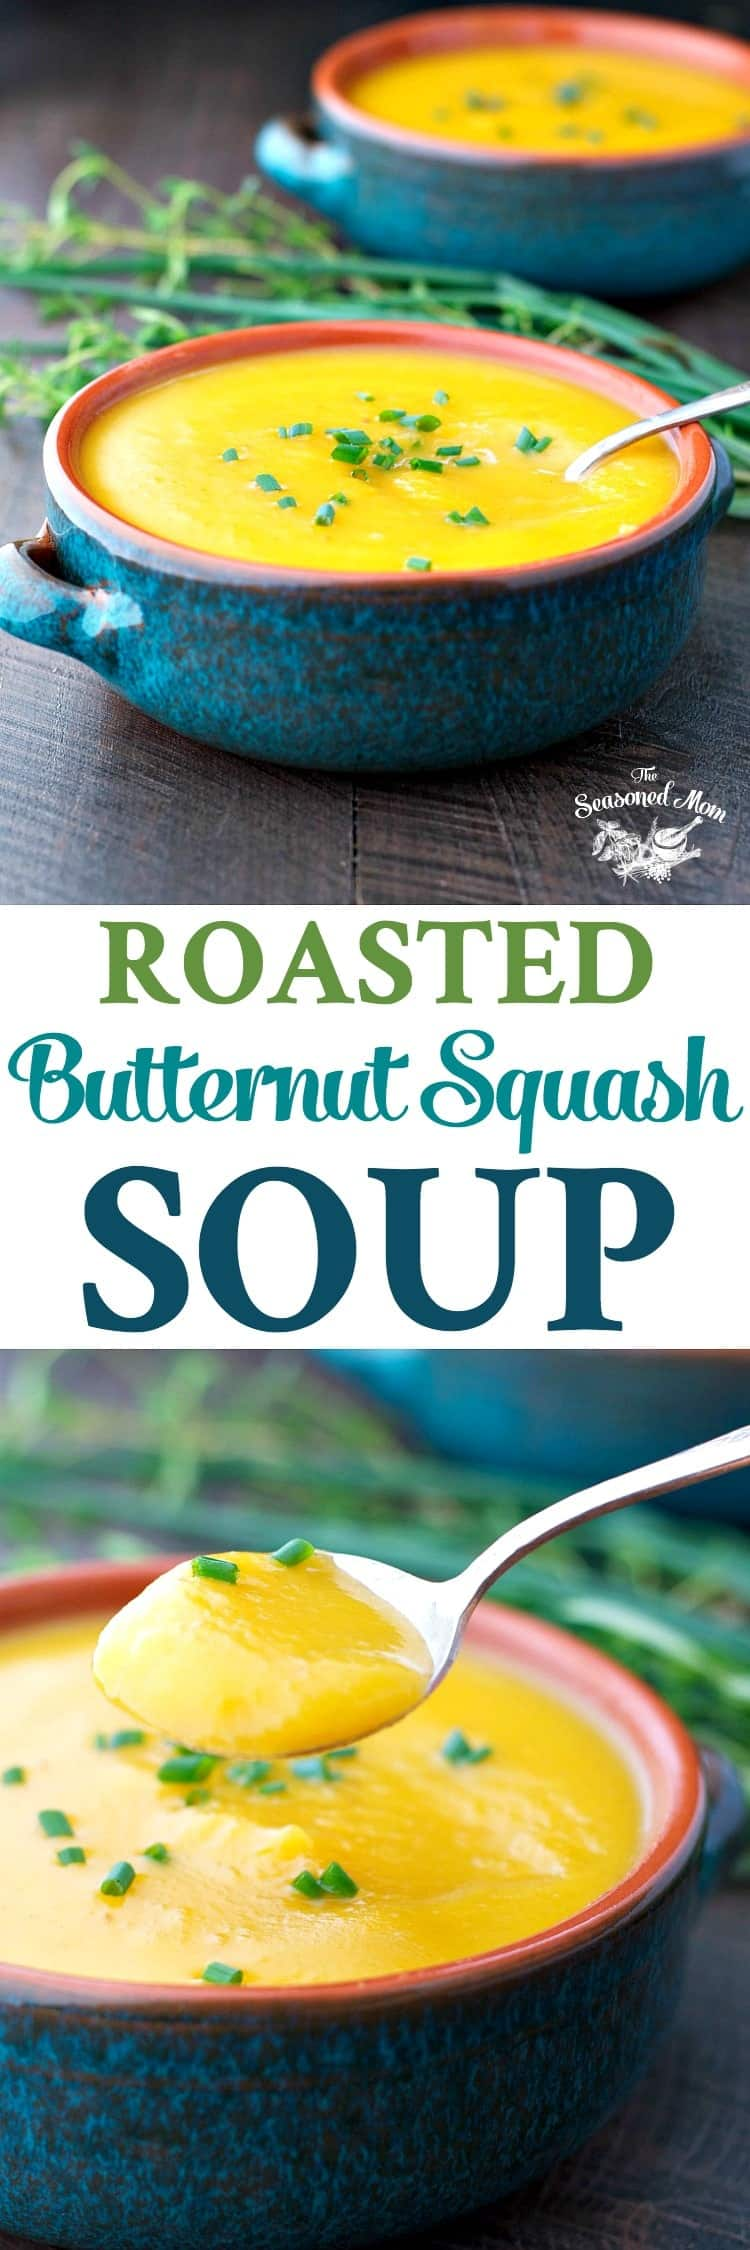 I am in love with this simple, healthy, and rustic Roasted Butternut Squash Soup! Soup Recipes | Easy Dinner Recipe | Healthy Dinner Recipes | Vegetarian Recipes